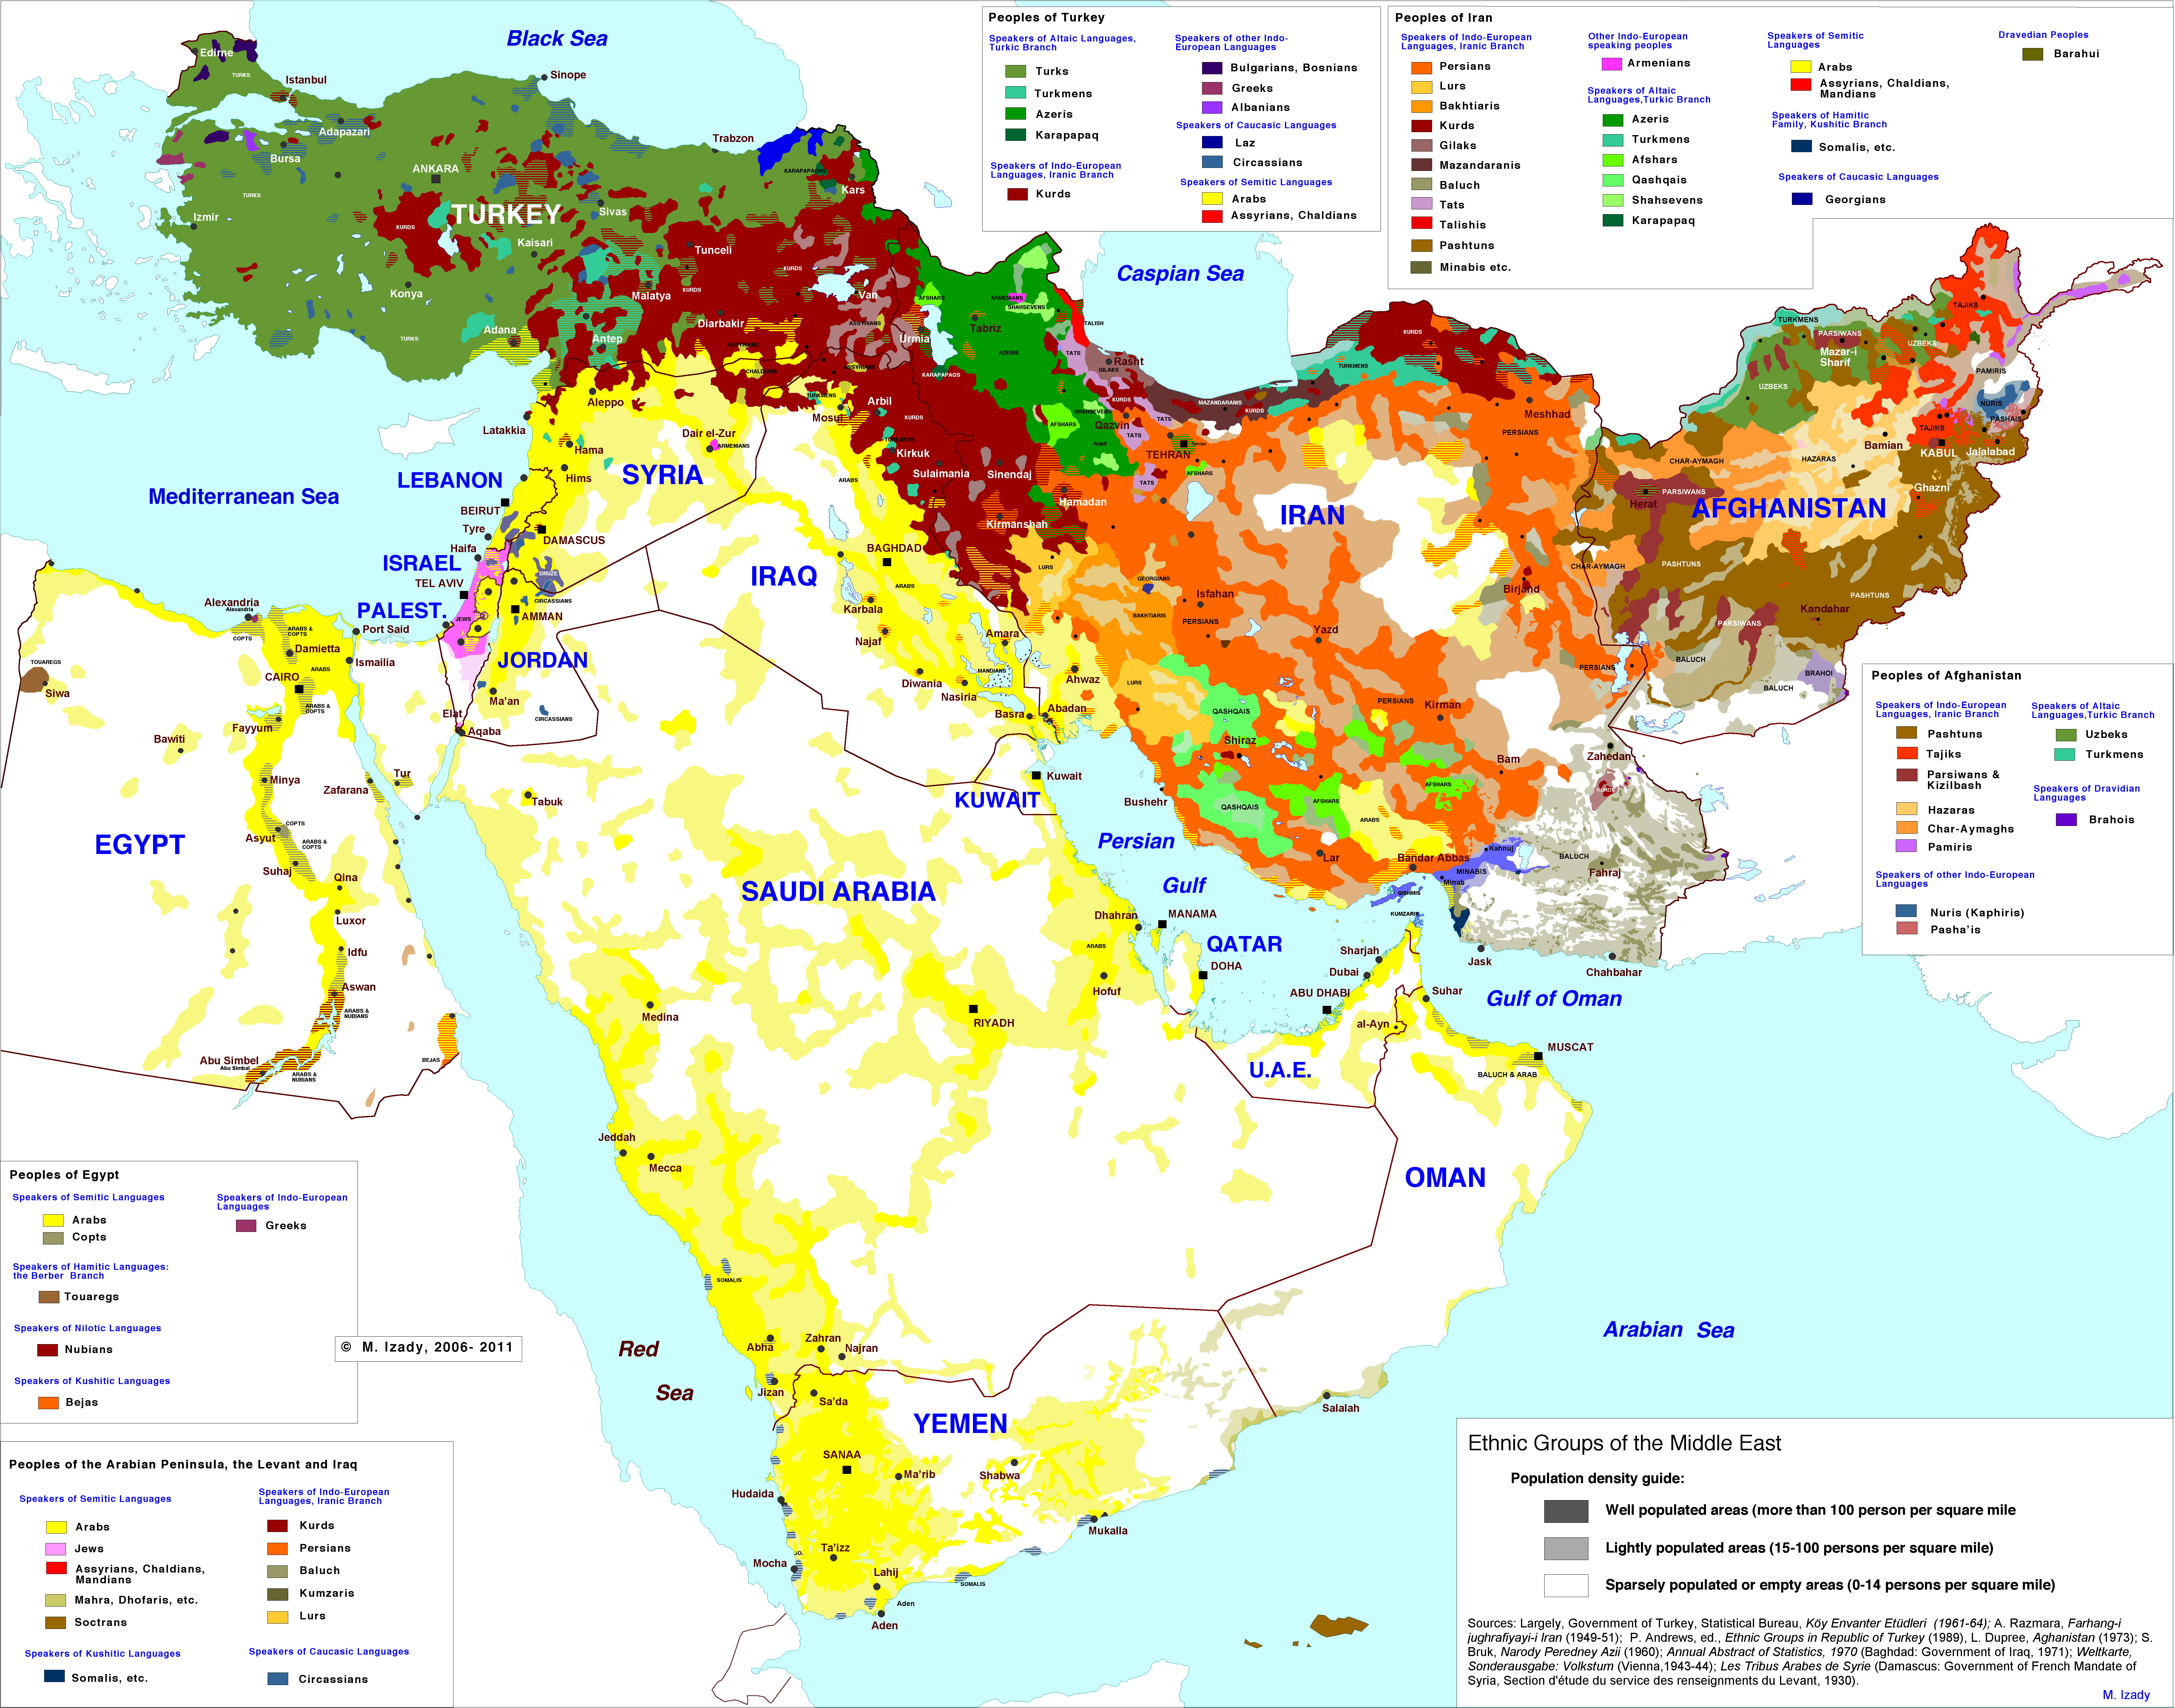 Ethnic groups of the Middle East  Vivid Maps